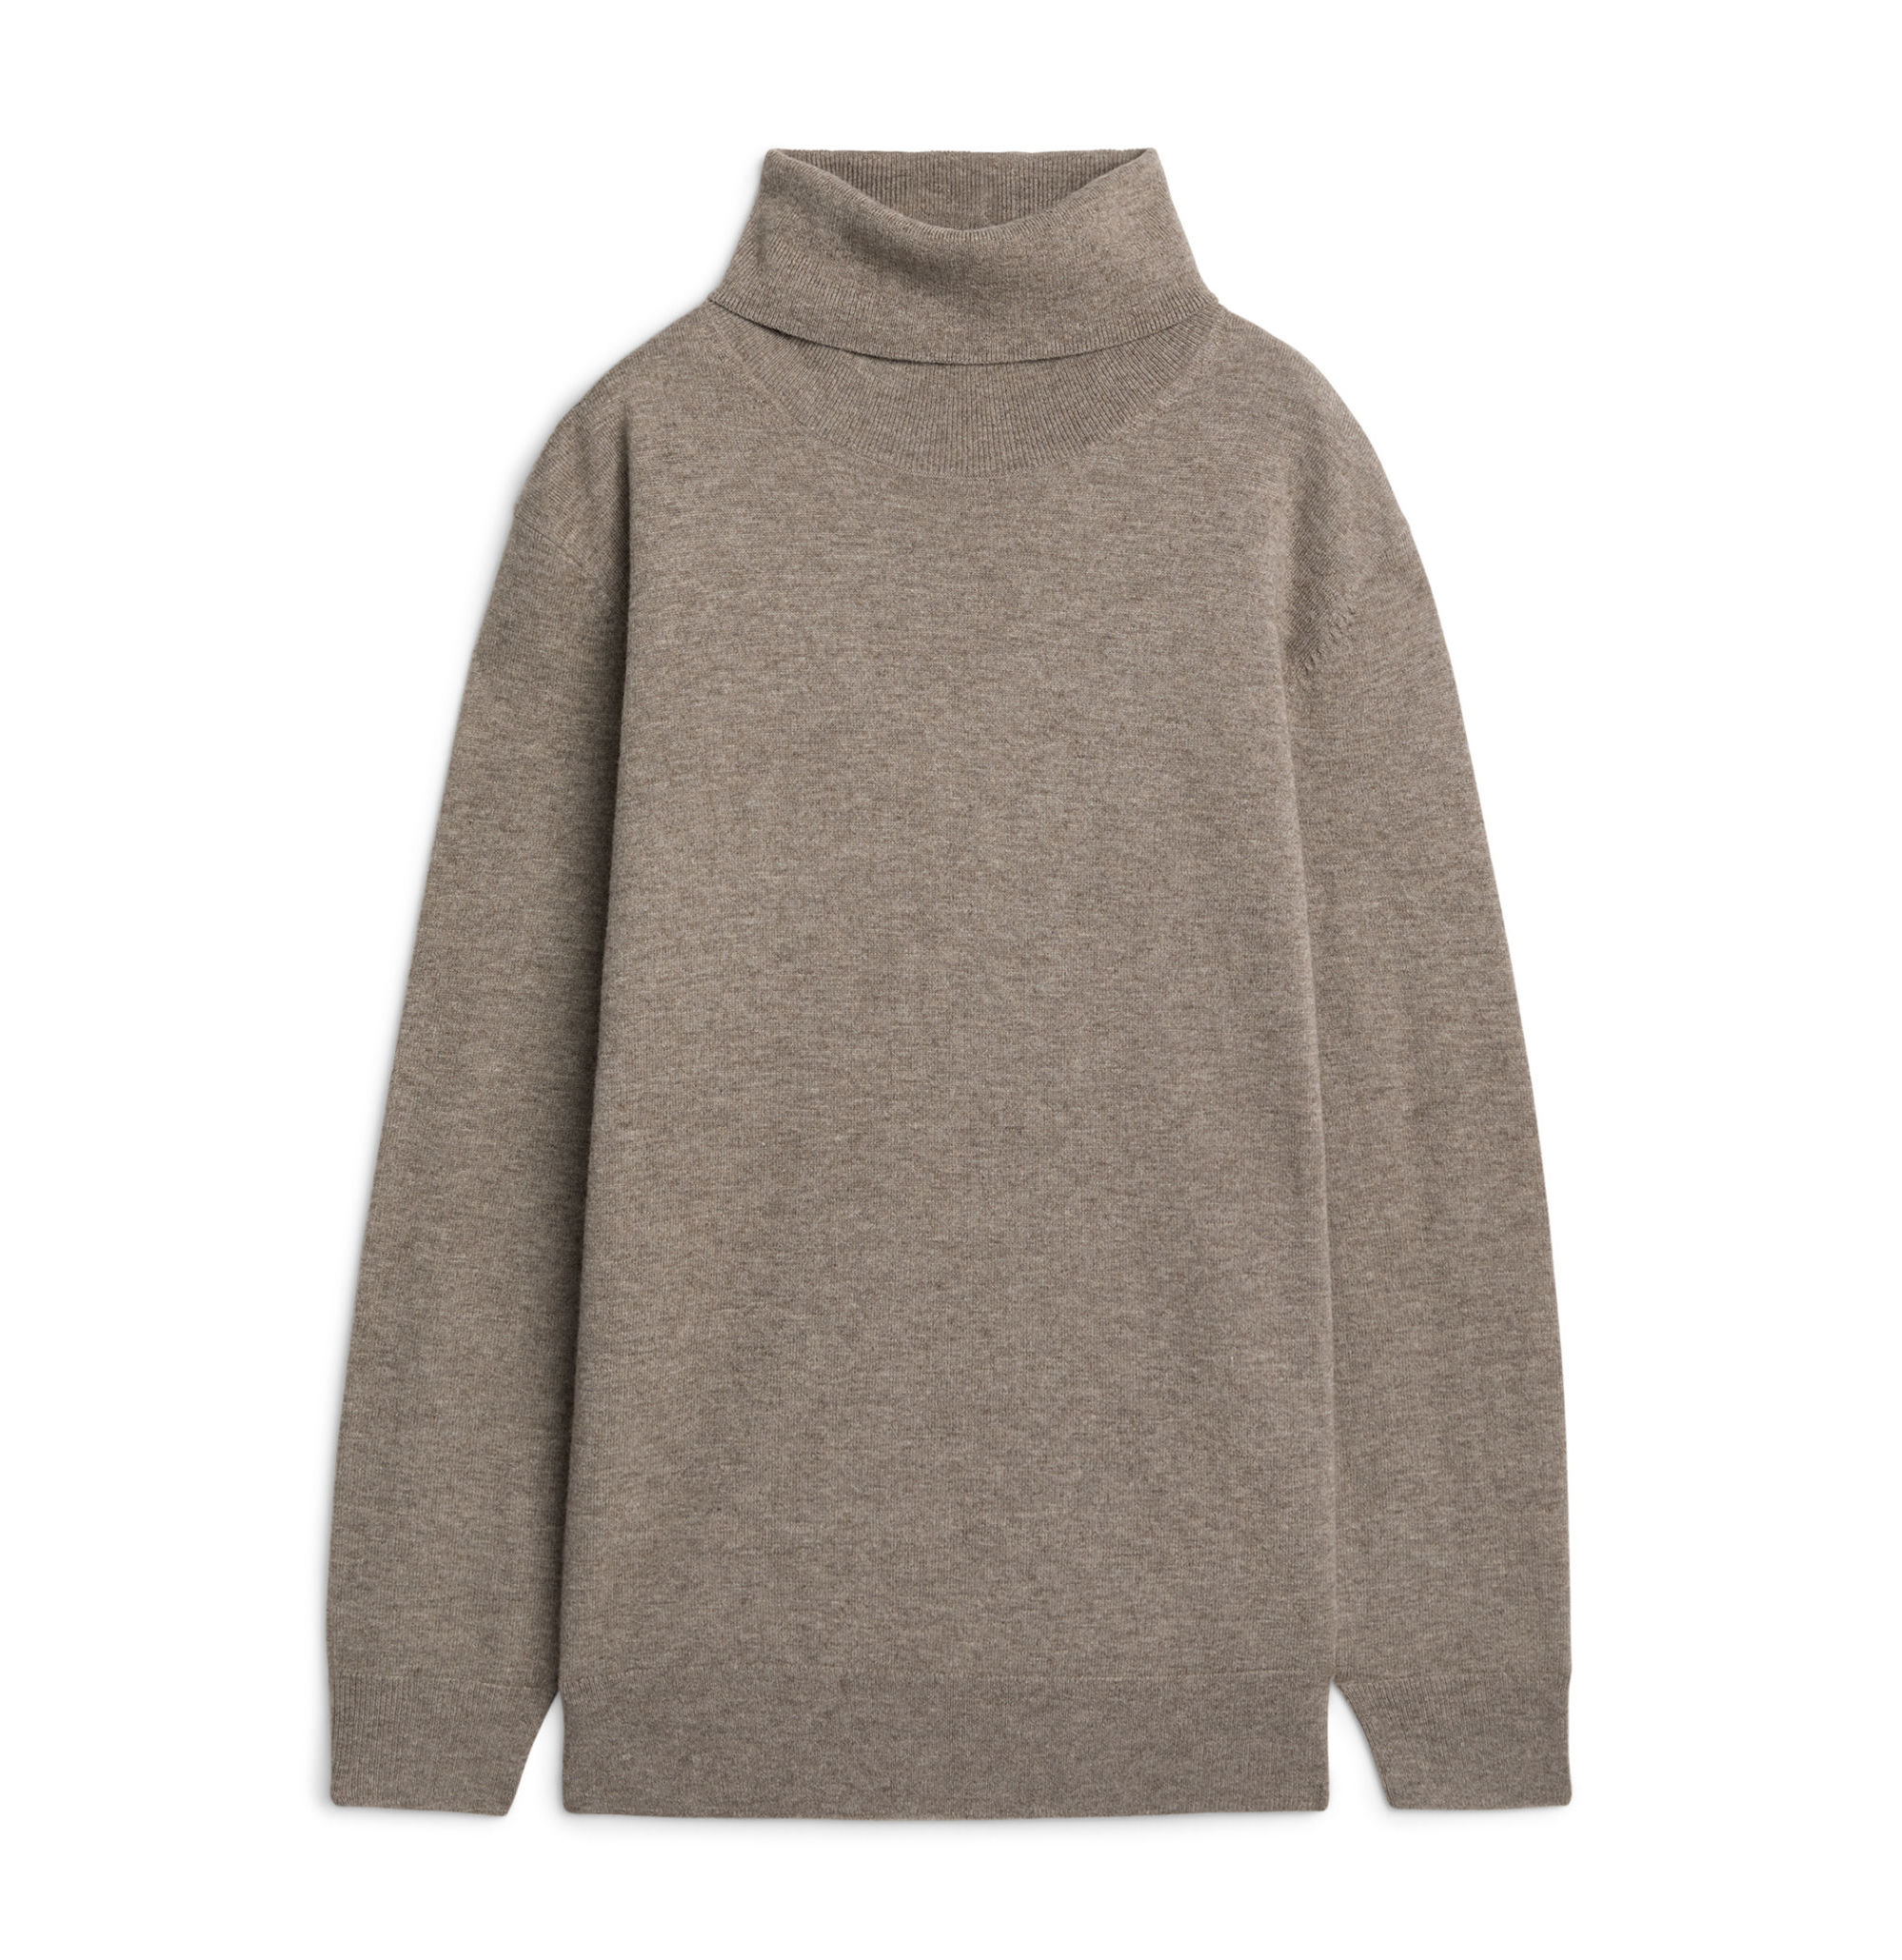 Wool and Yak Roll Neck Jumper  £69